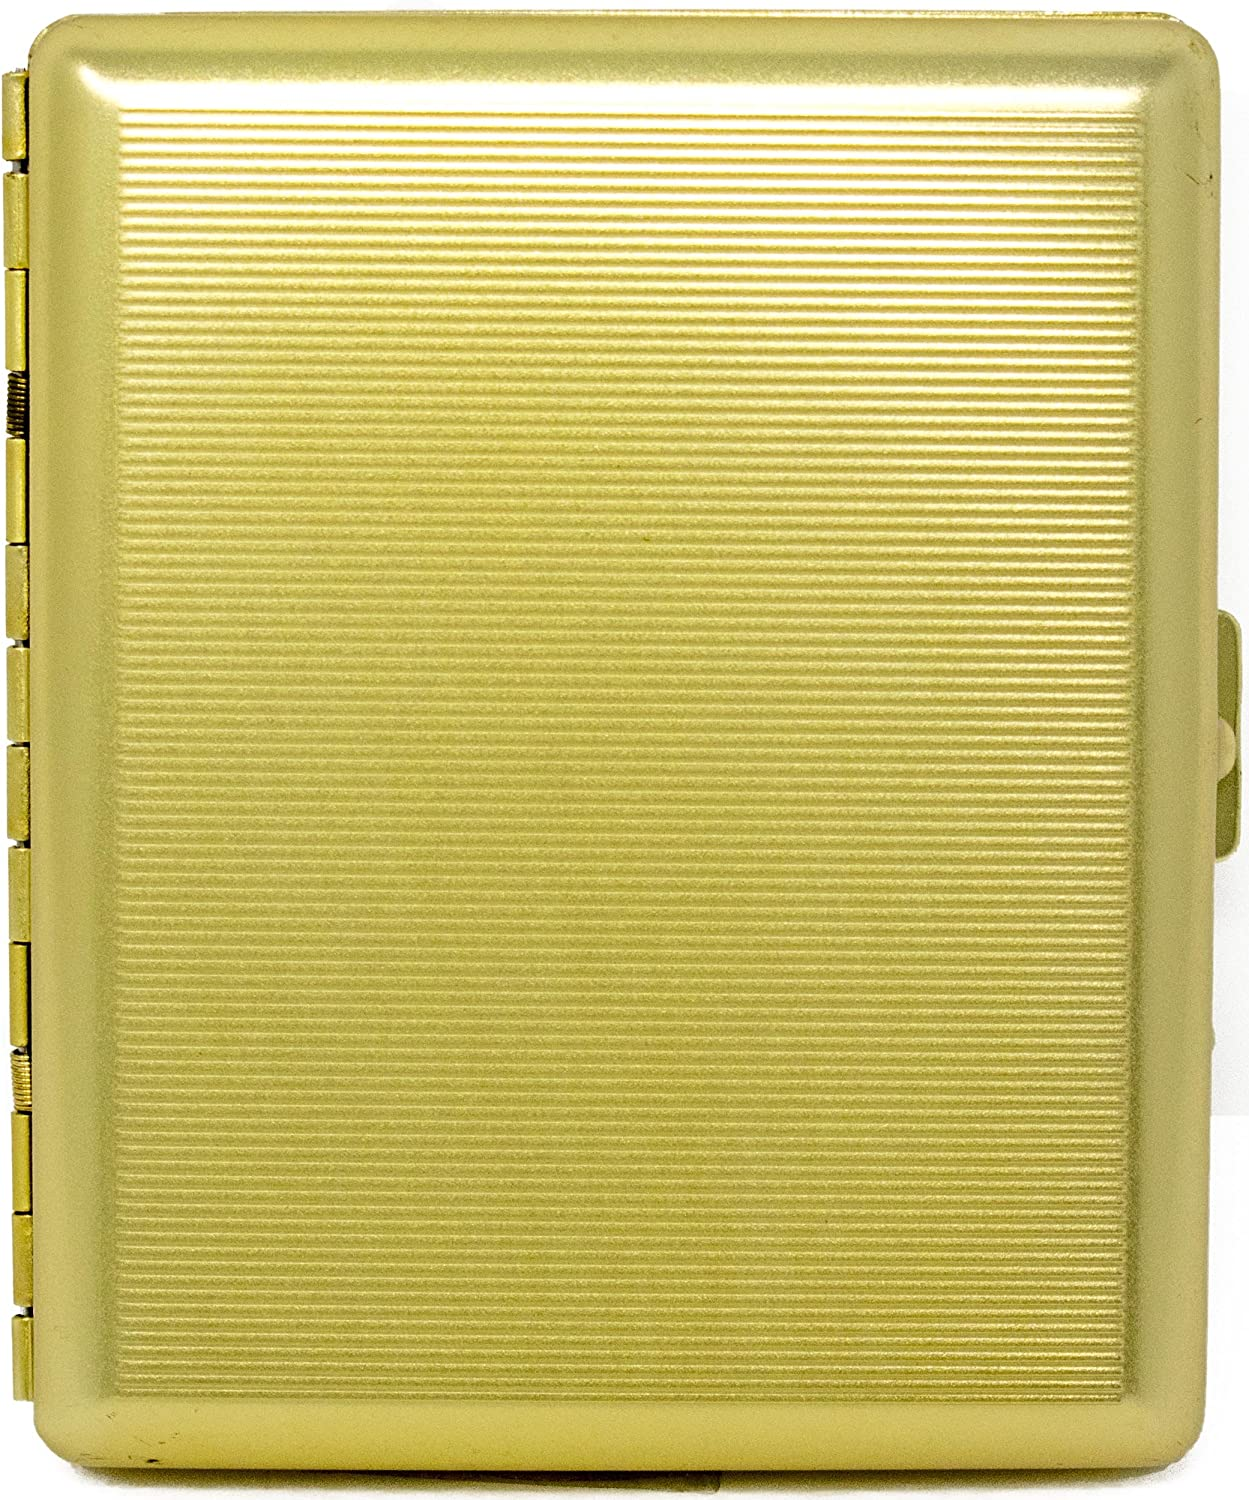 Gold Classic Full Pack 100s Case Stas Metal-Plated Max Max 64% OFF 89% OFF Cigarette